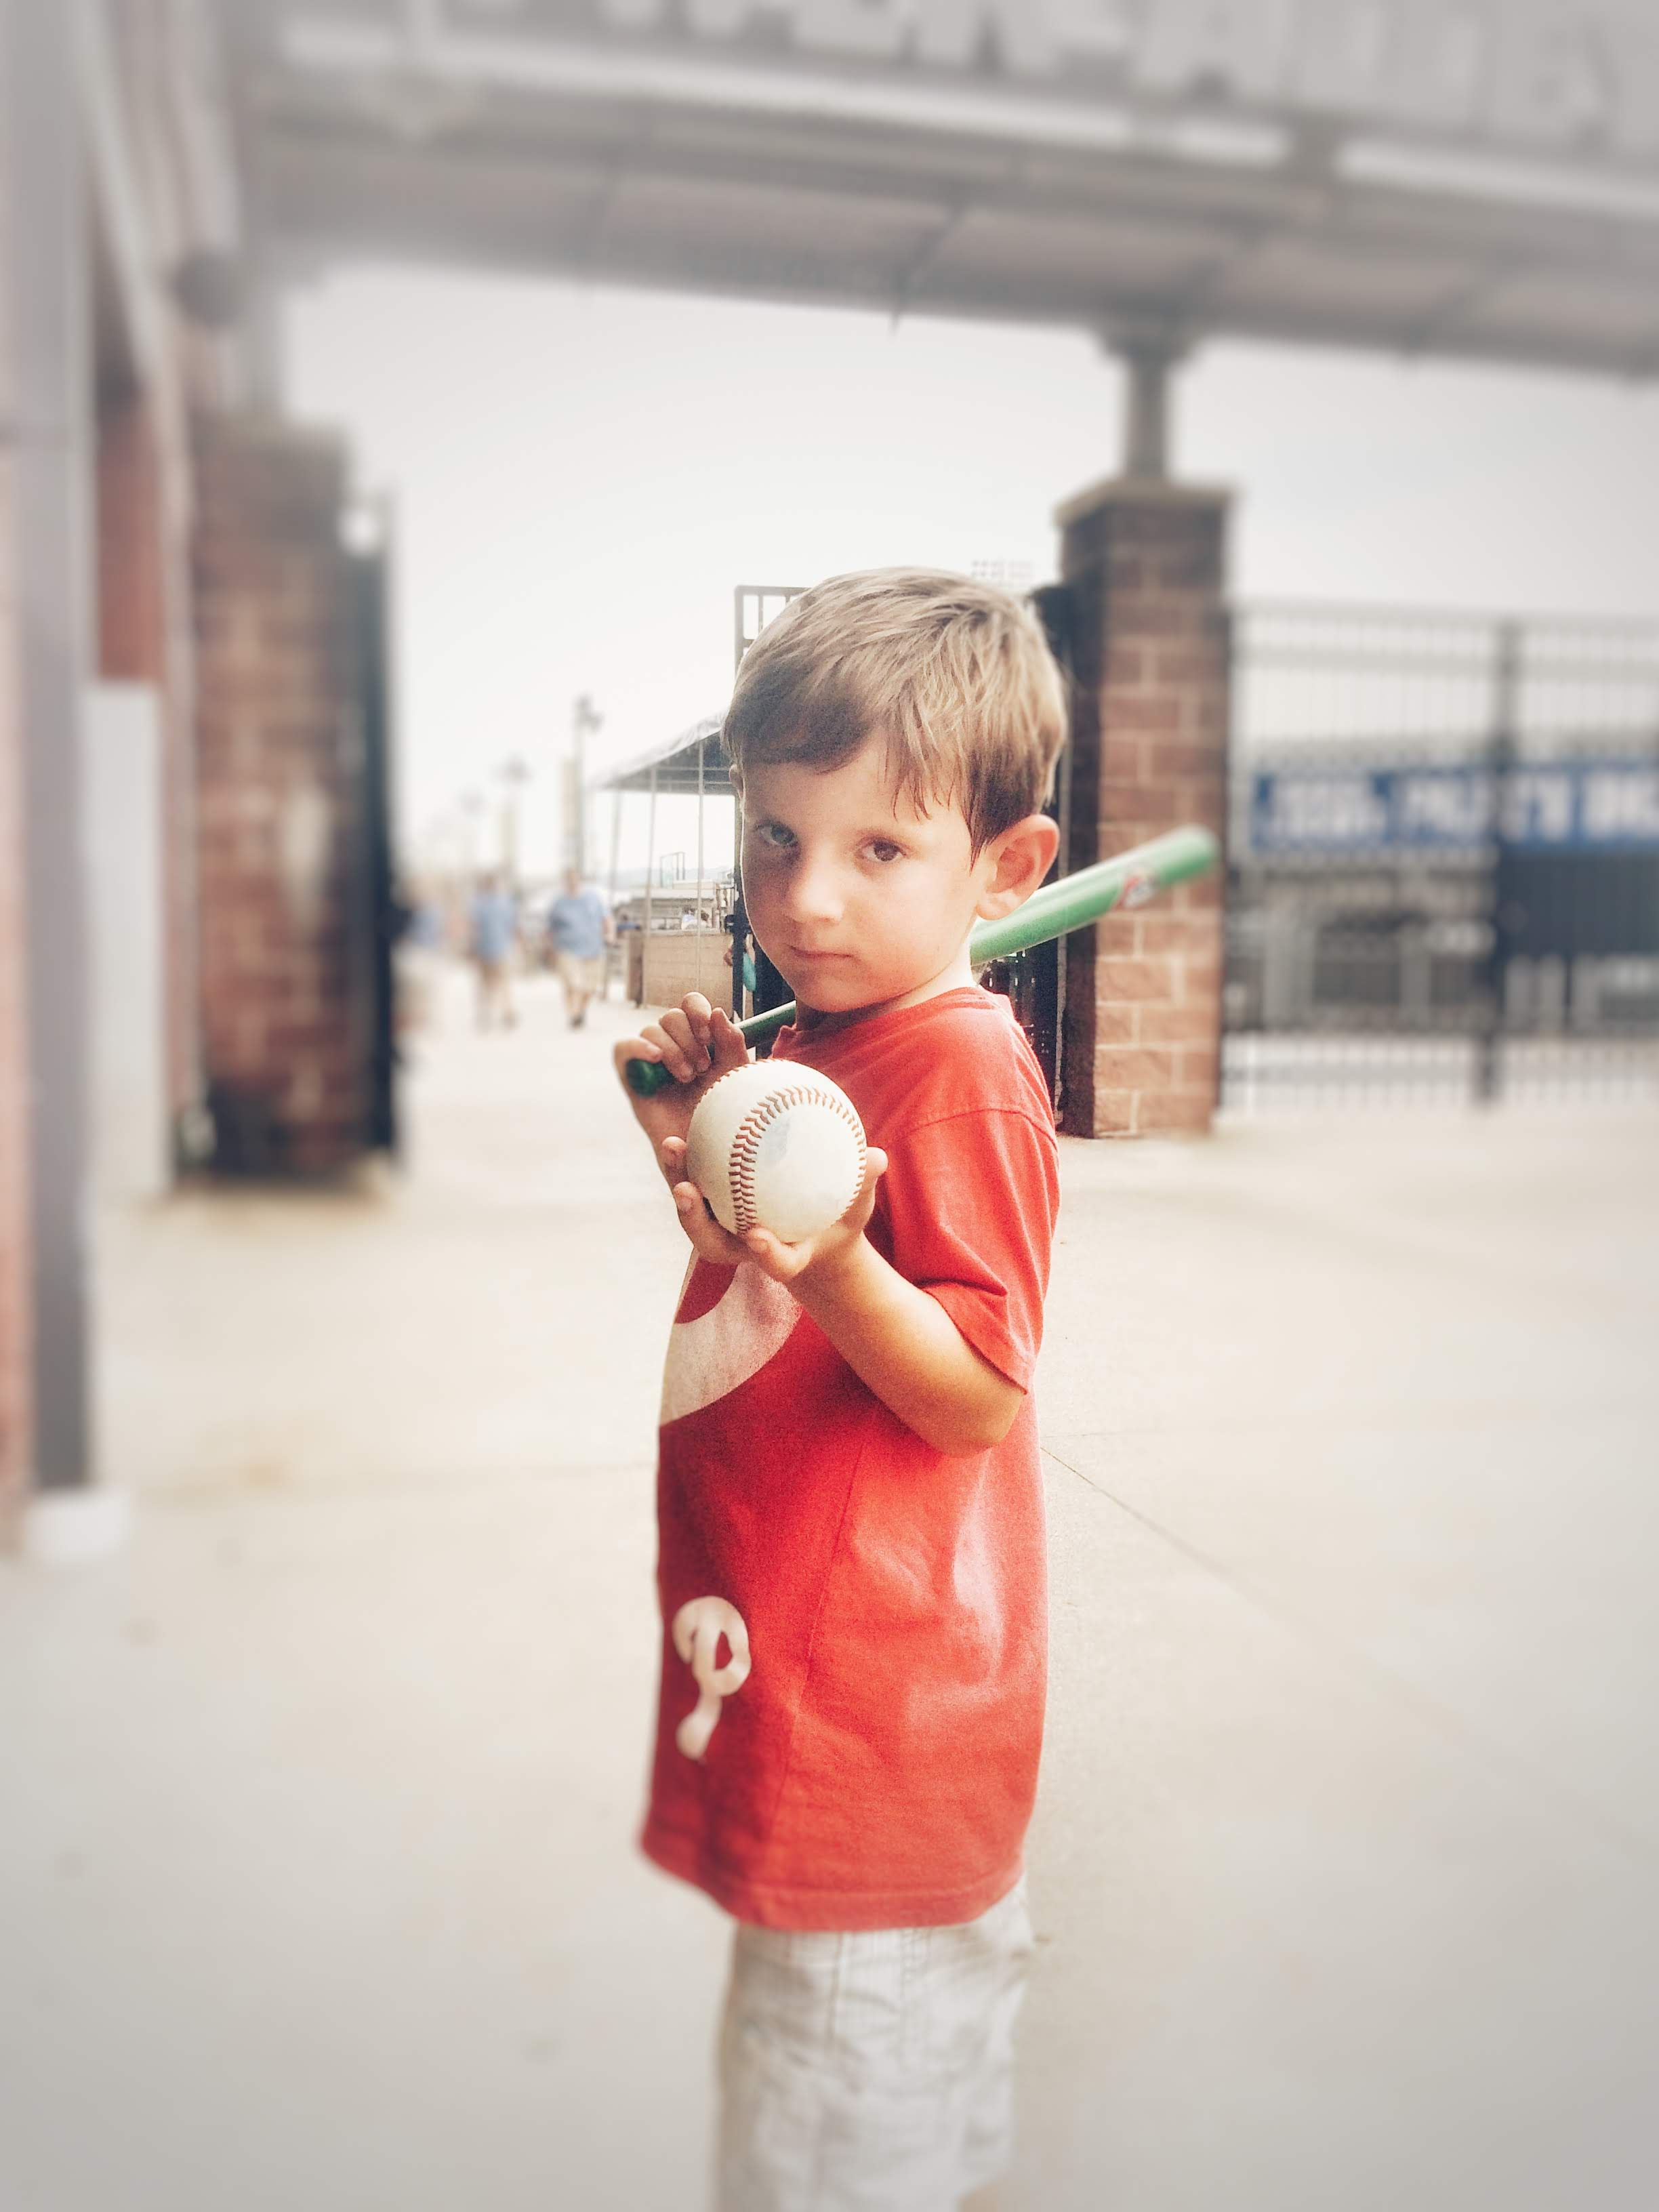 Ollie got a foul ball and a mini bat which was for dad (since we each got one that they gave away while at the Louisville Slugger tour)